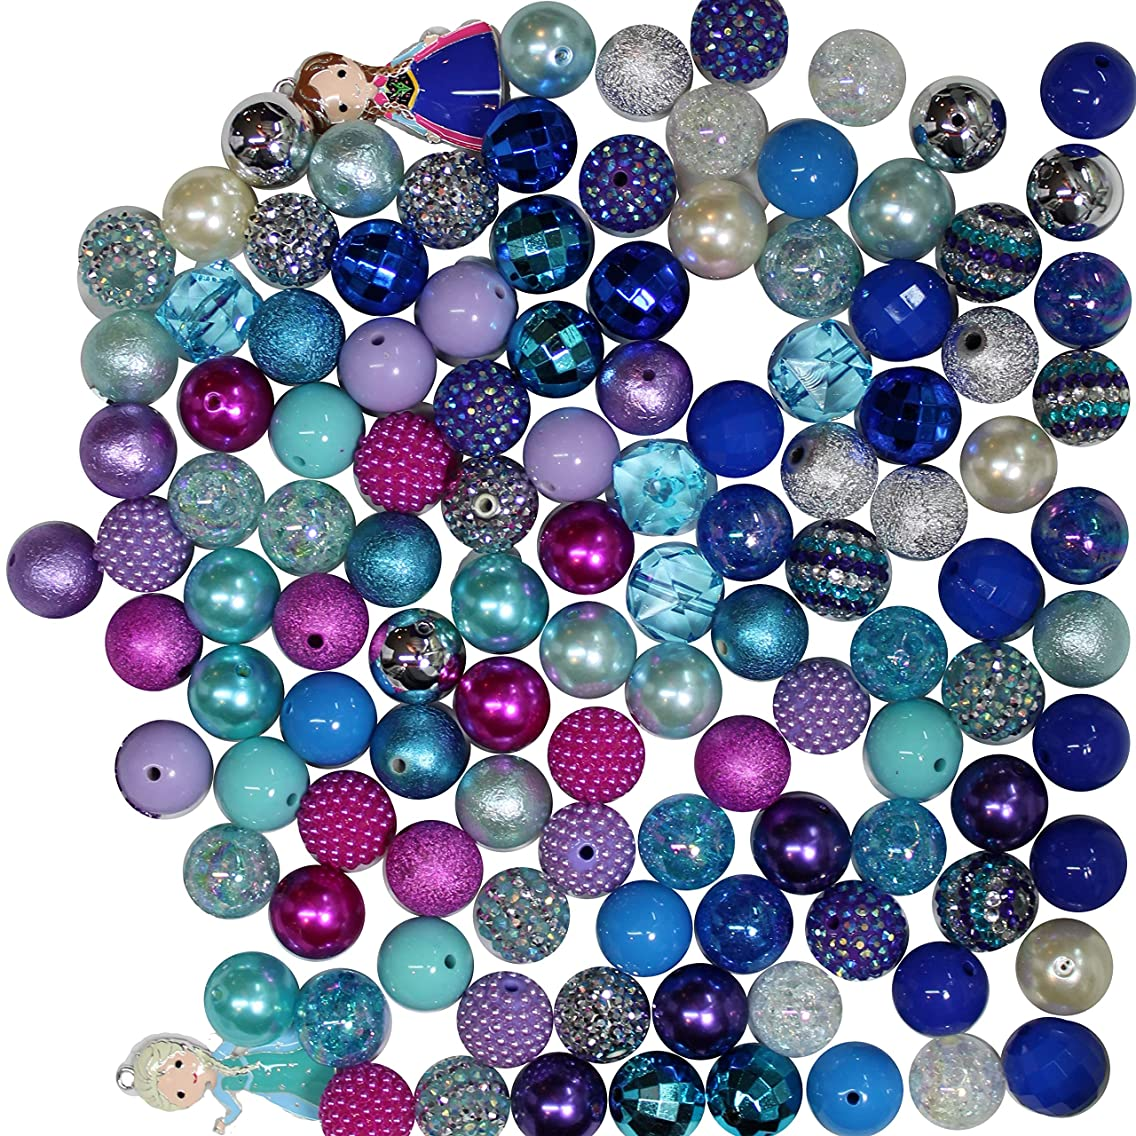 Ice Princess Party Theme Bulk Mix of 20mm Bubblegum Beads in Pink, Purple, Turquoise, Blue with 2 Pendant